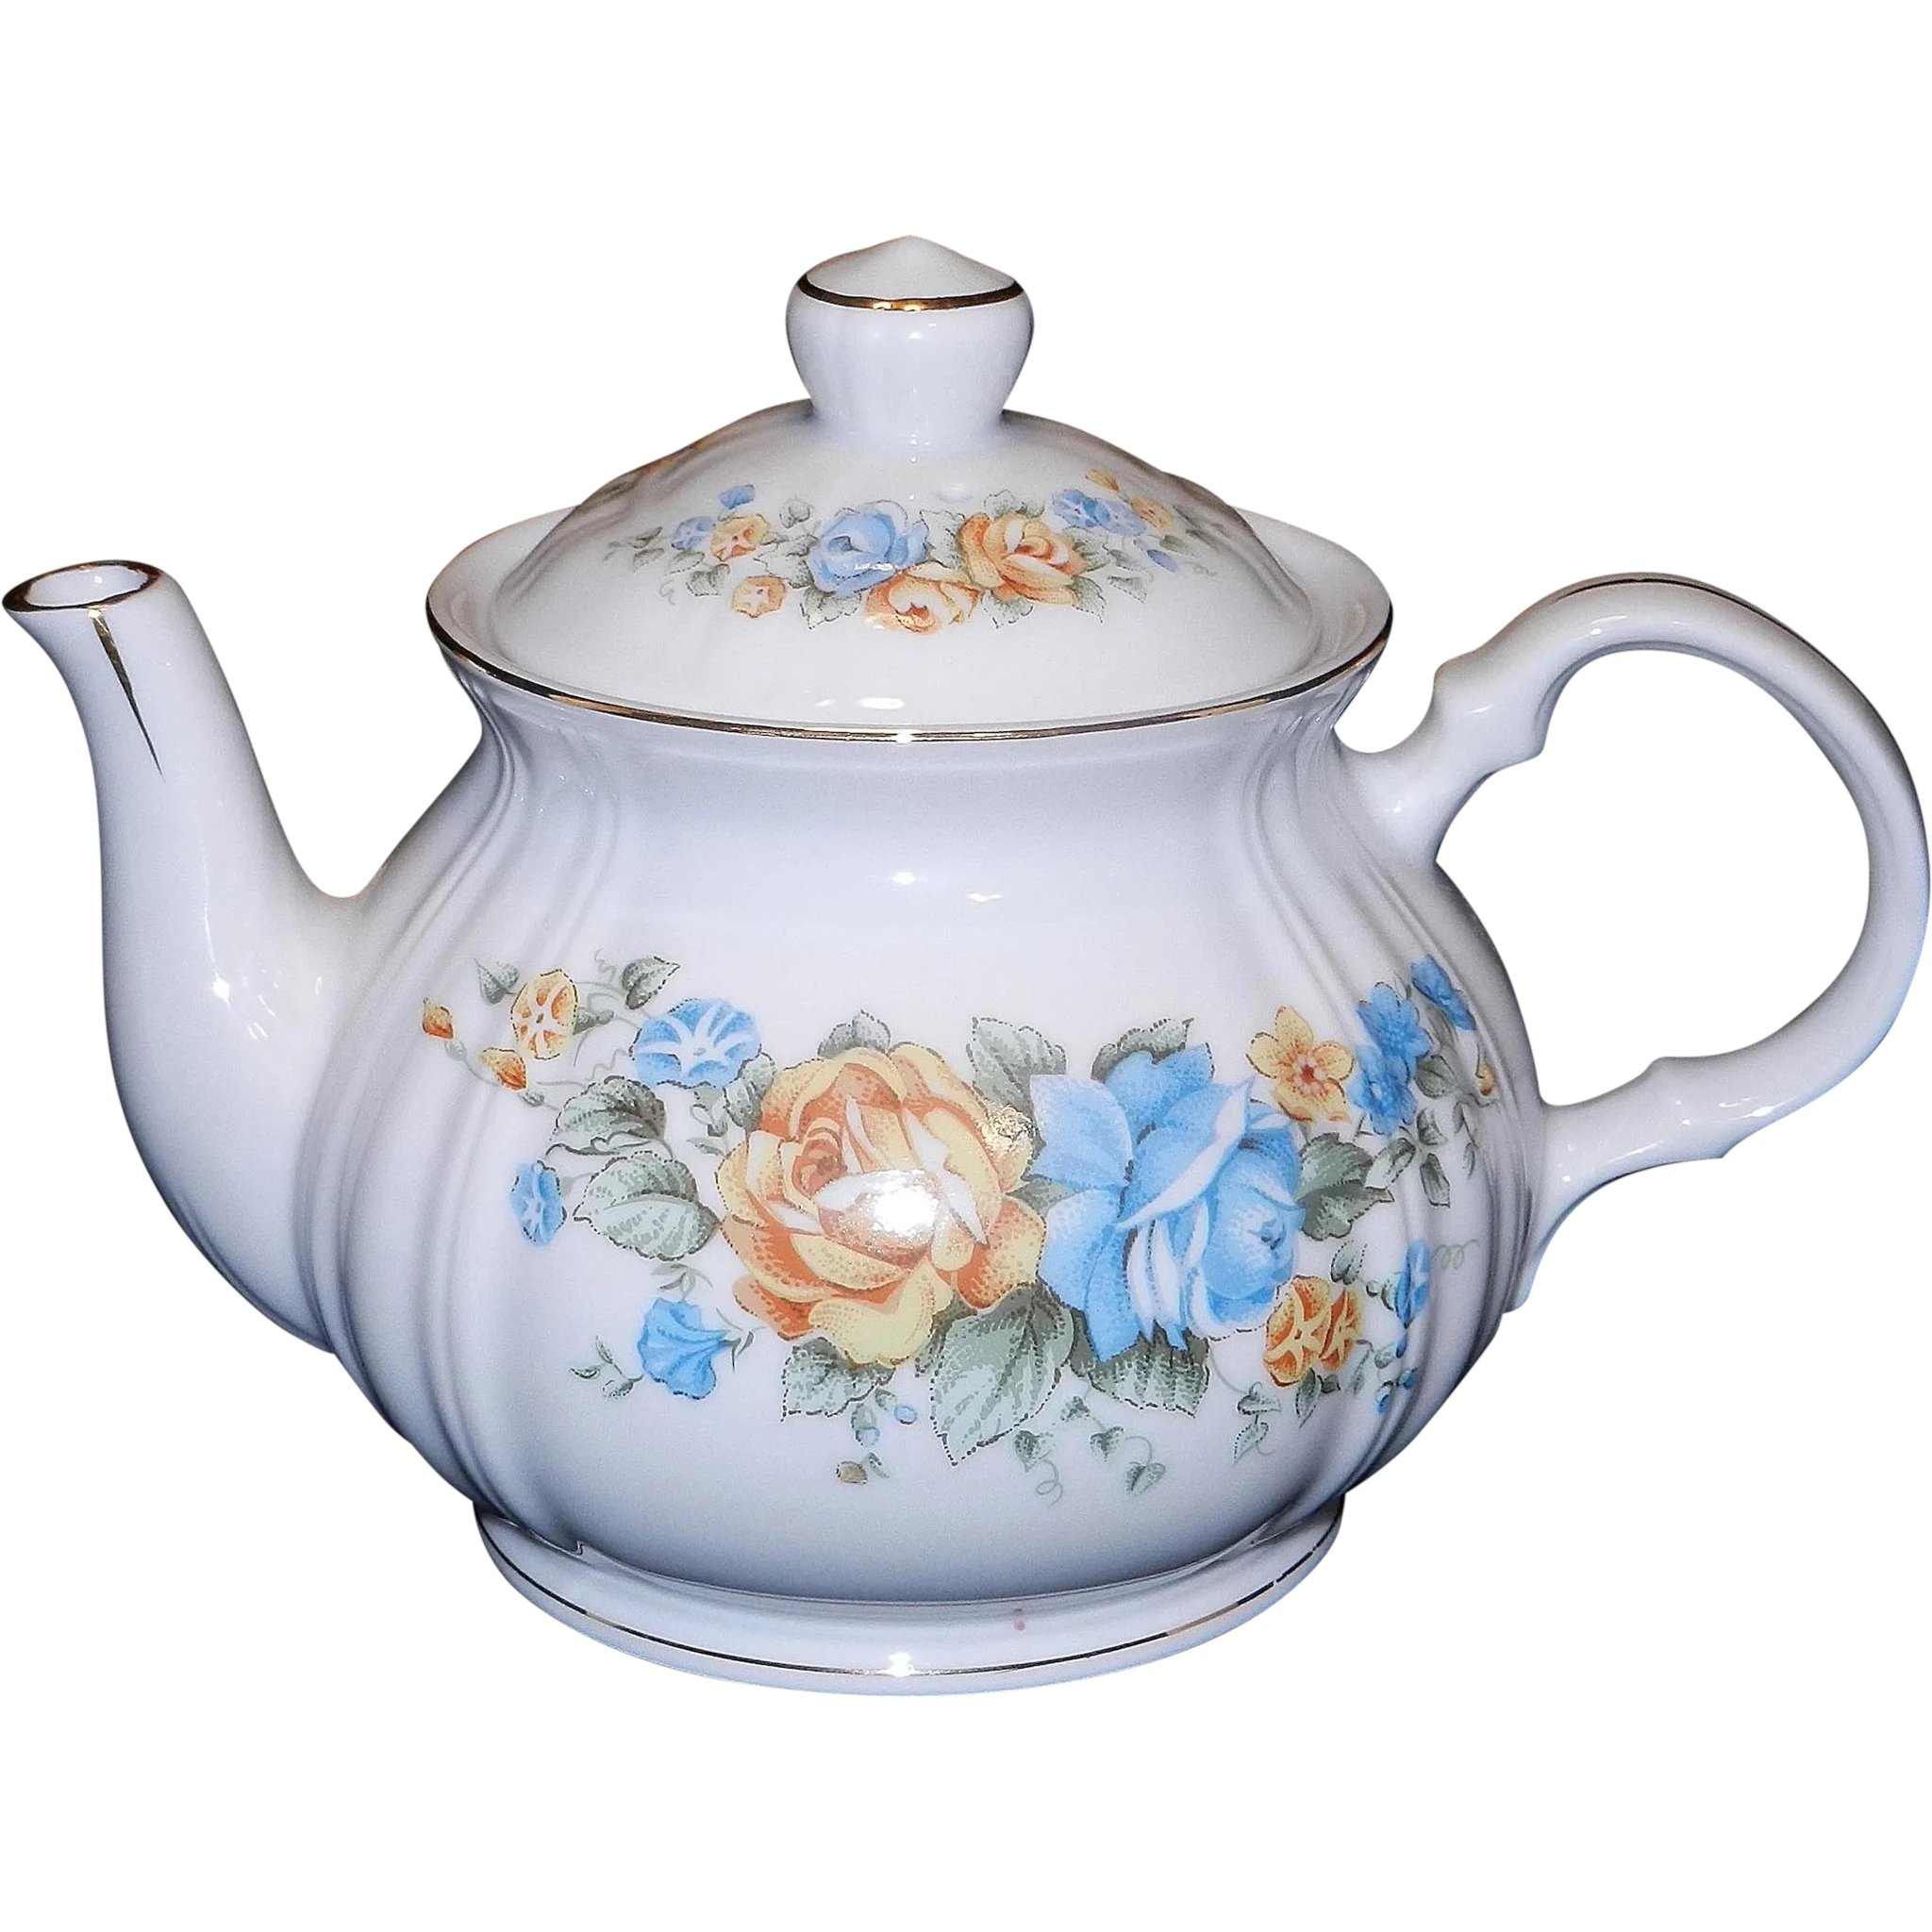 Vintage teapot screenprinted with lady Josephine and flowers